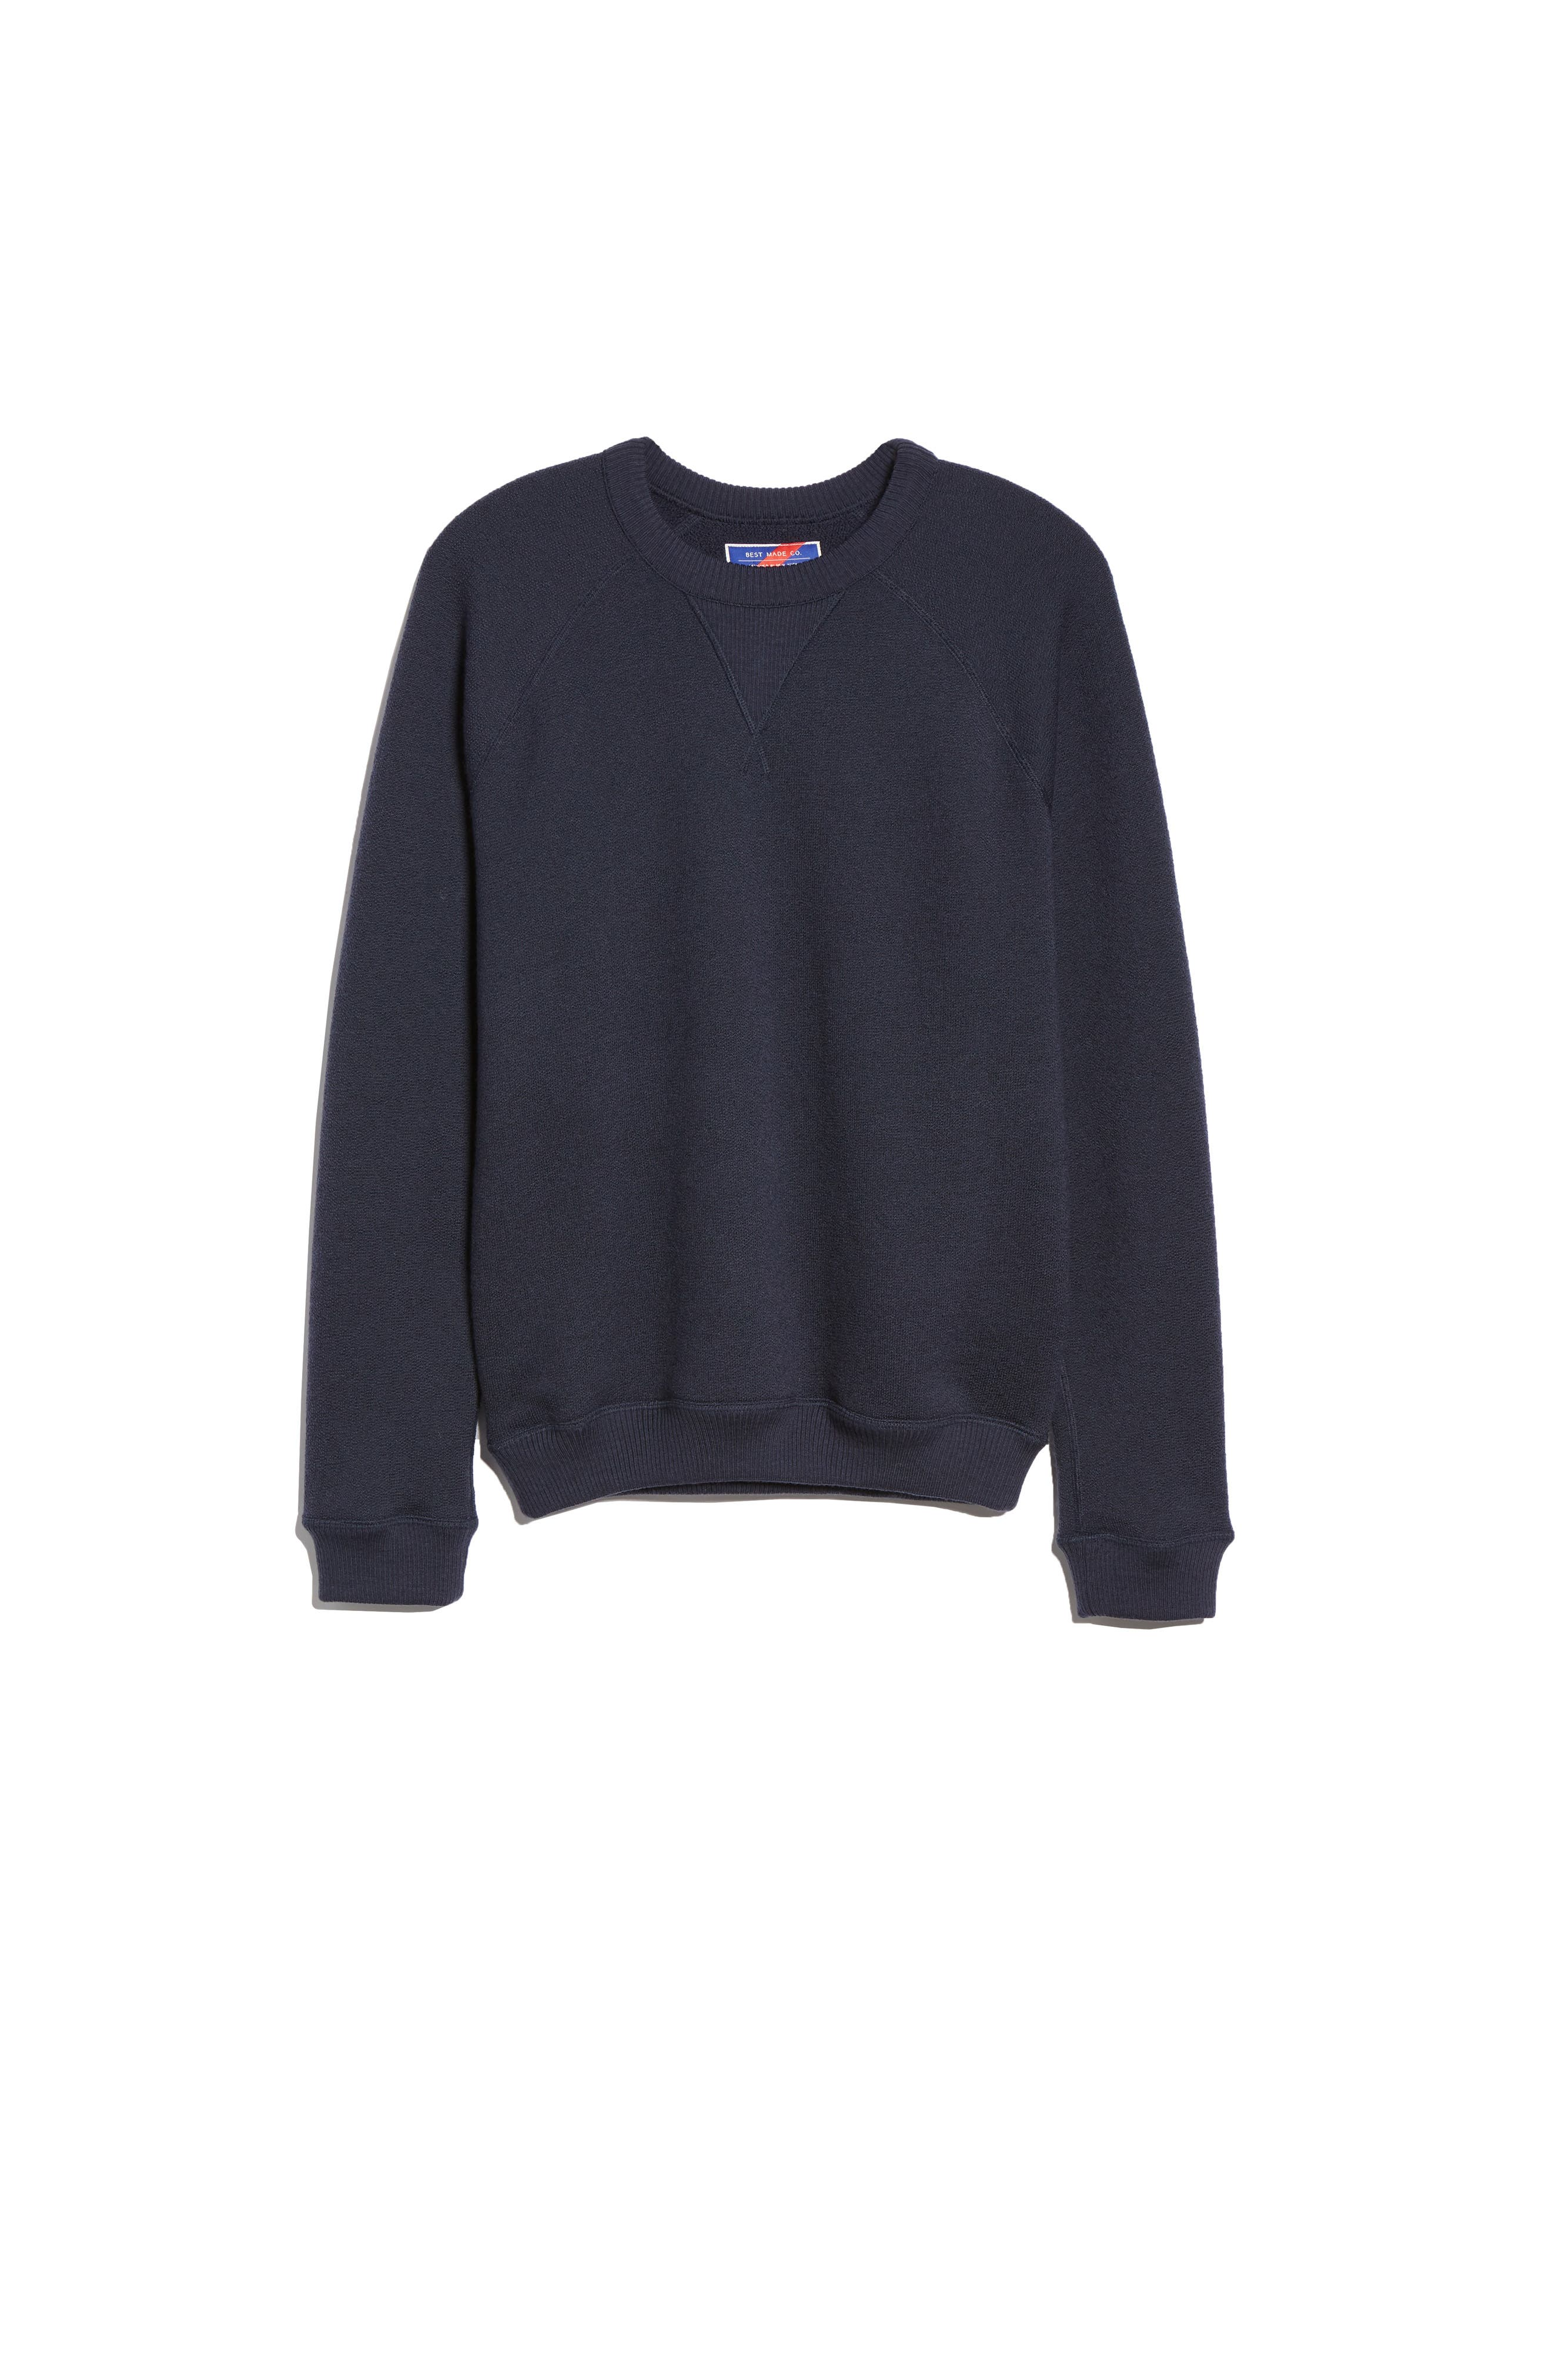 BEST MADE CO. The Merino Wool Fleece Crew Sweatshirt, Main, color, 410